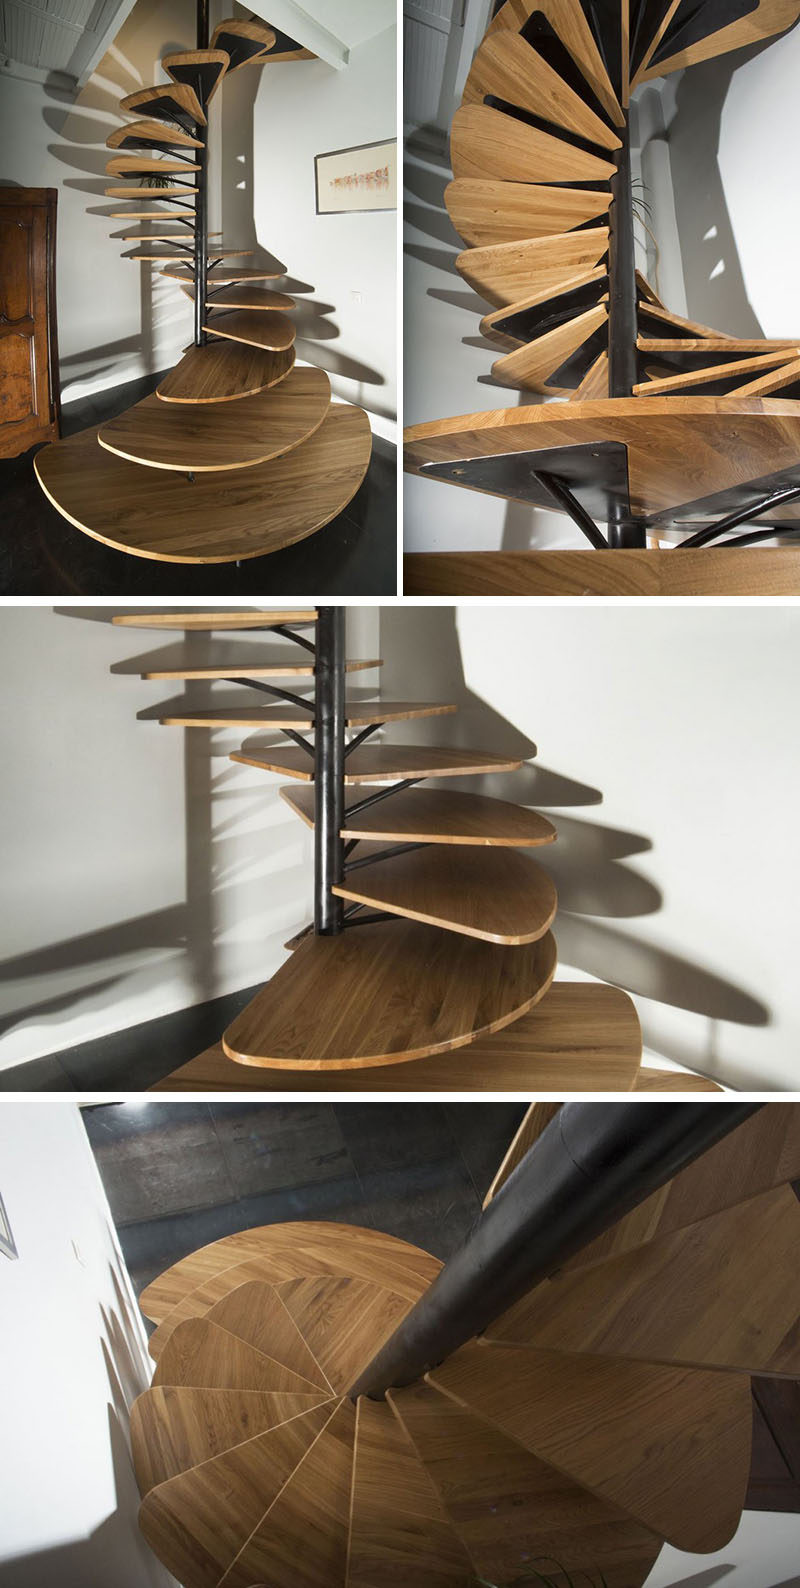 The steps of this wood and metal modern spiral staircase start out large and act like a small landing but get slightly smaller as you climb them. #SpiralStairs #SpiralStaircase #ModernSpiralStairs